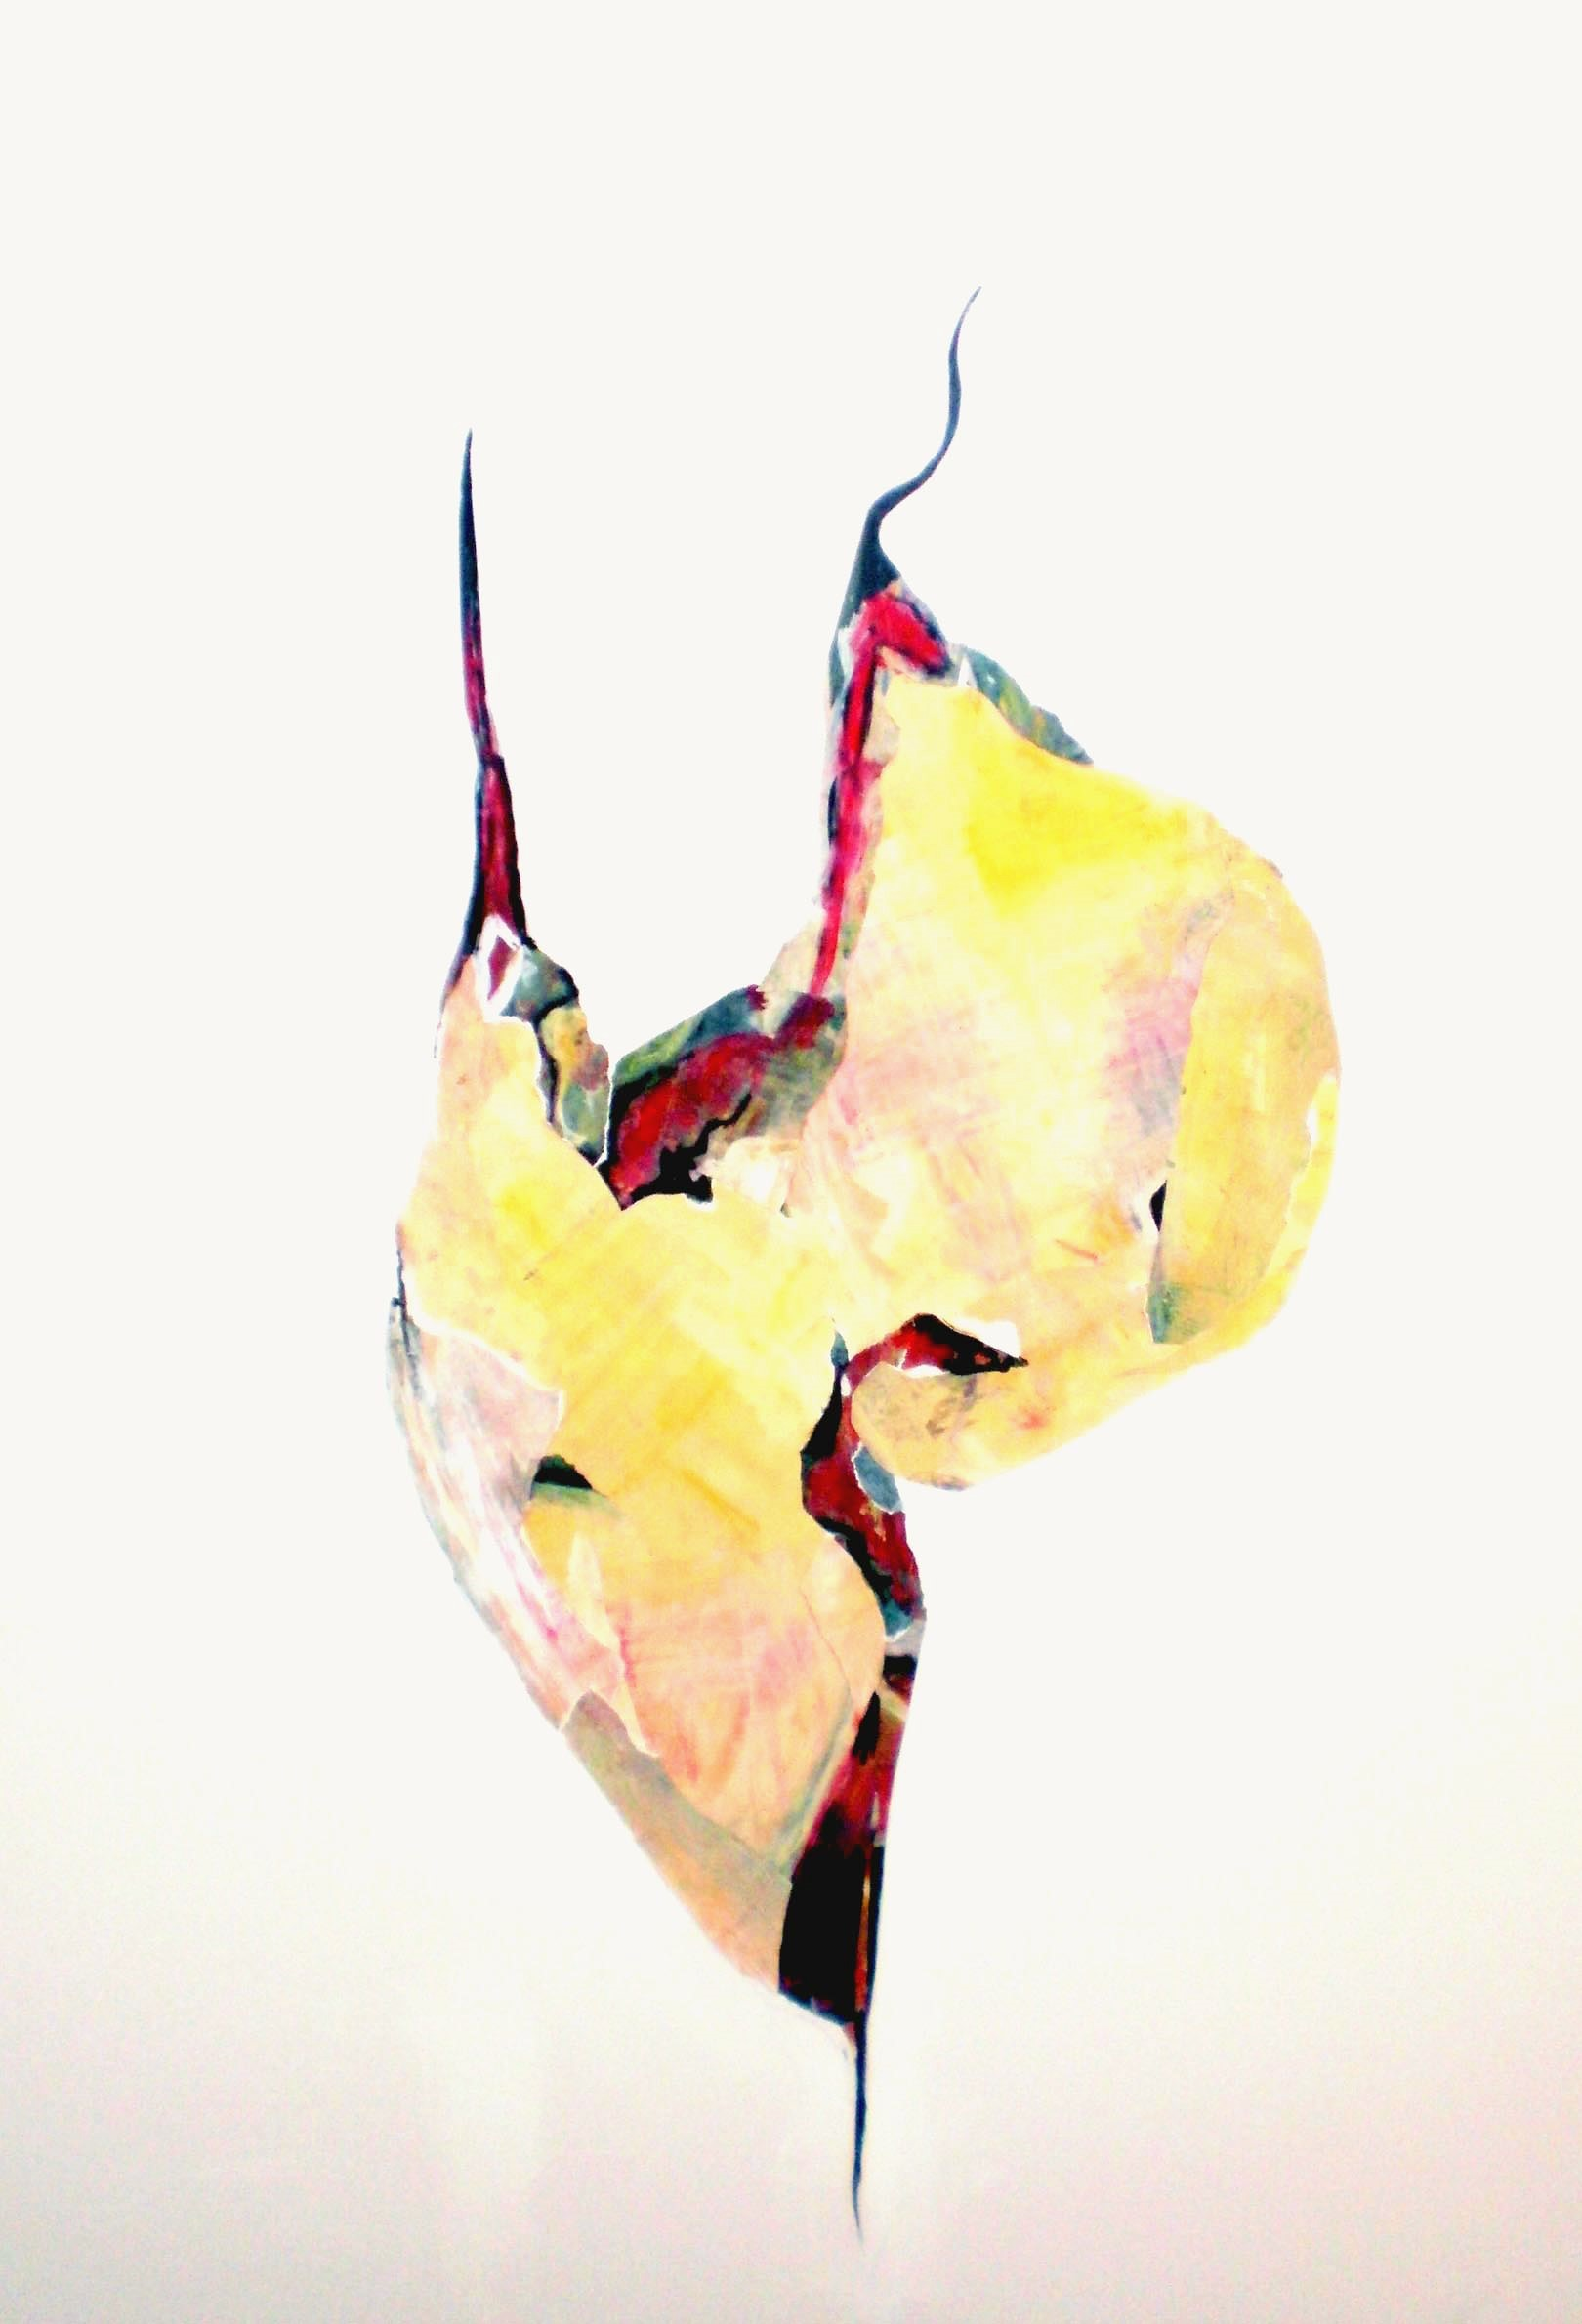 Colette Standish Surreal Abstracted Figure 1 Acrylic Collage on Canvas 48in-60in 2014-5.jpg